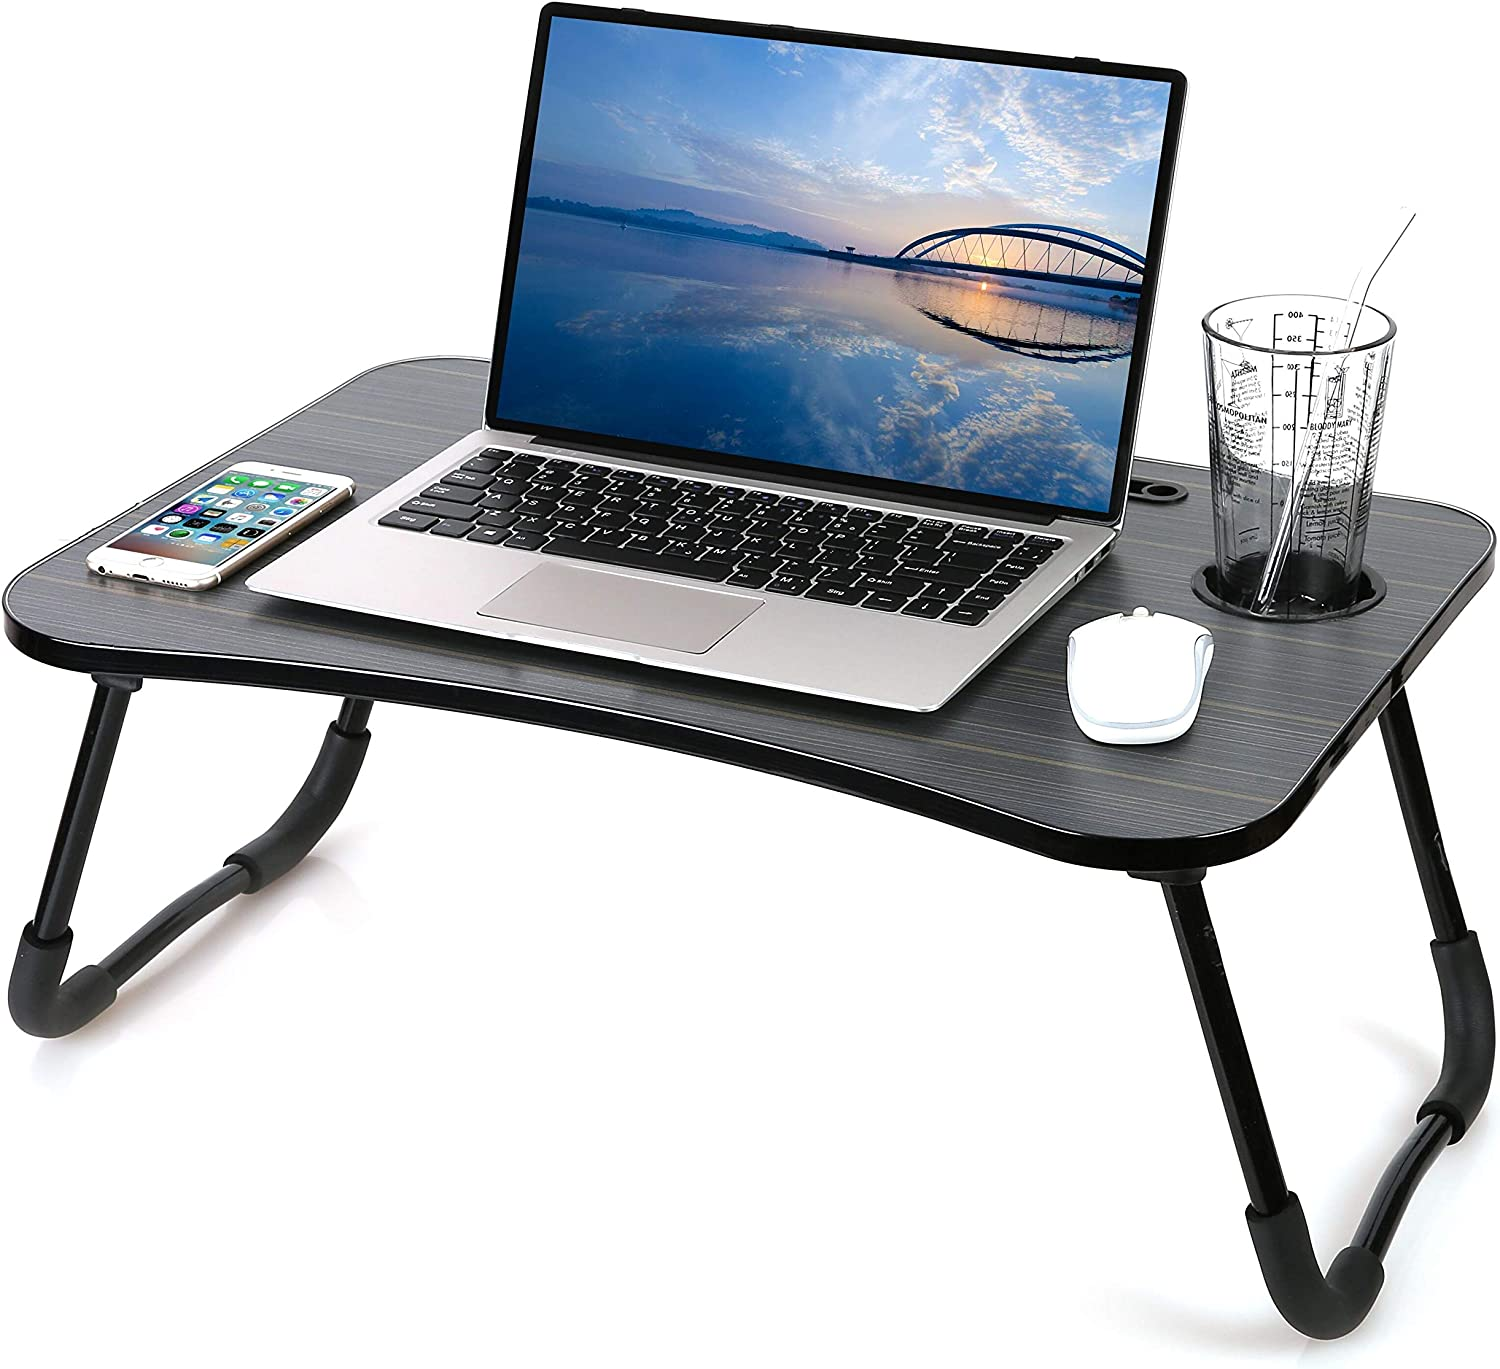 U R Laptop Industry No. 1 Desk Foldable Portable T Tray Table Spasm price Bed